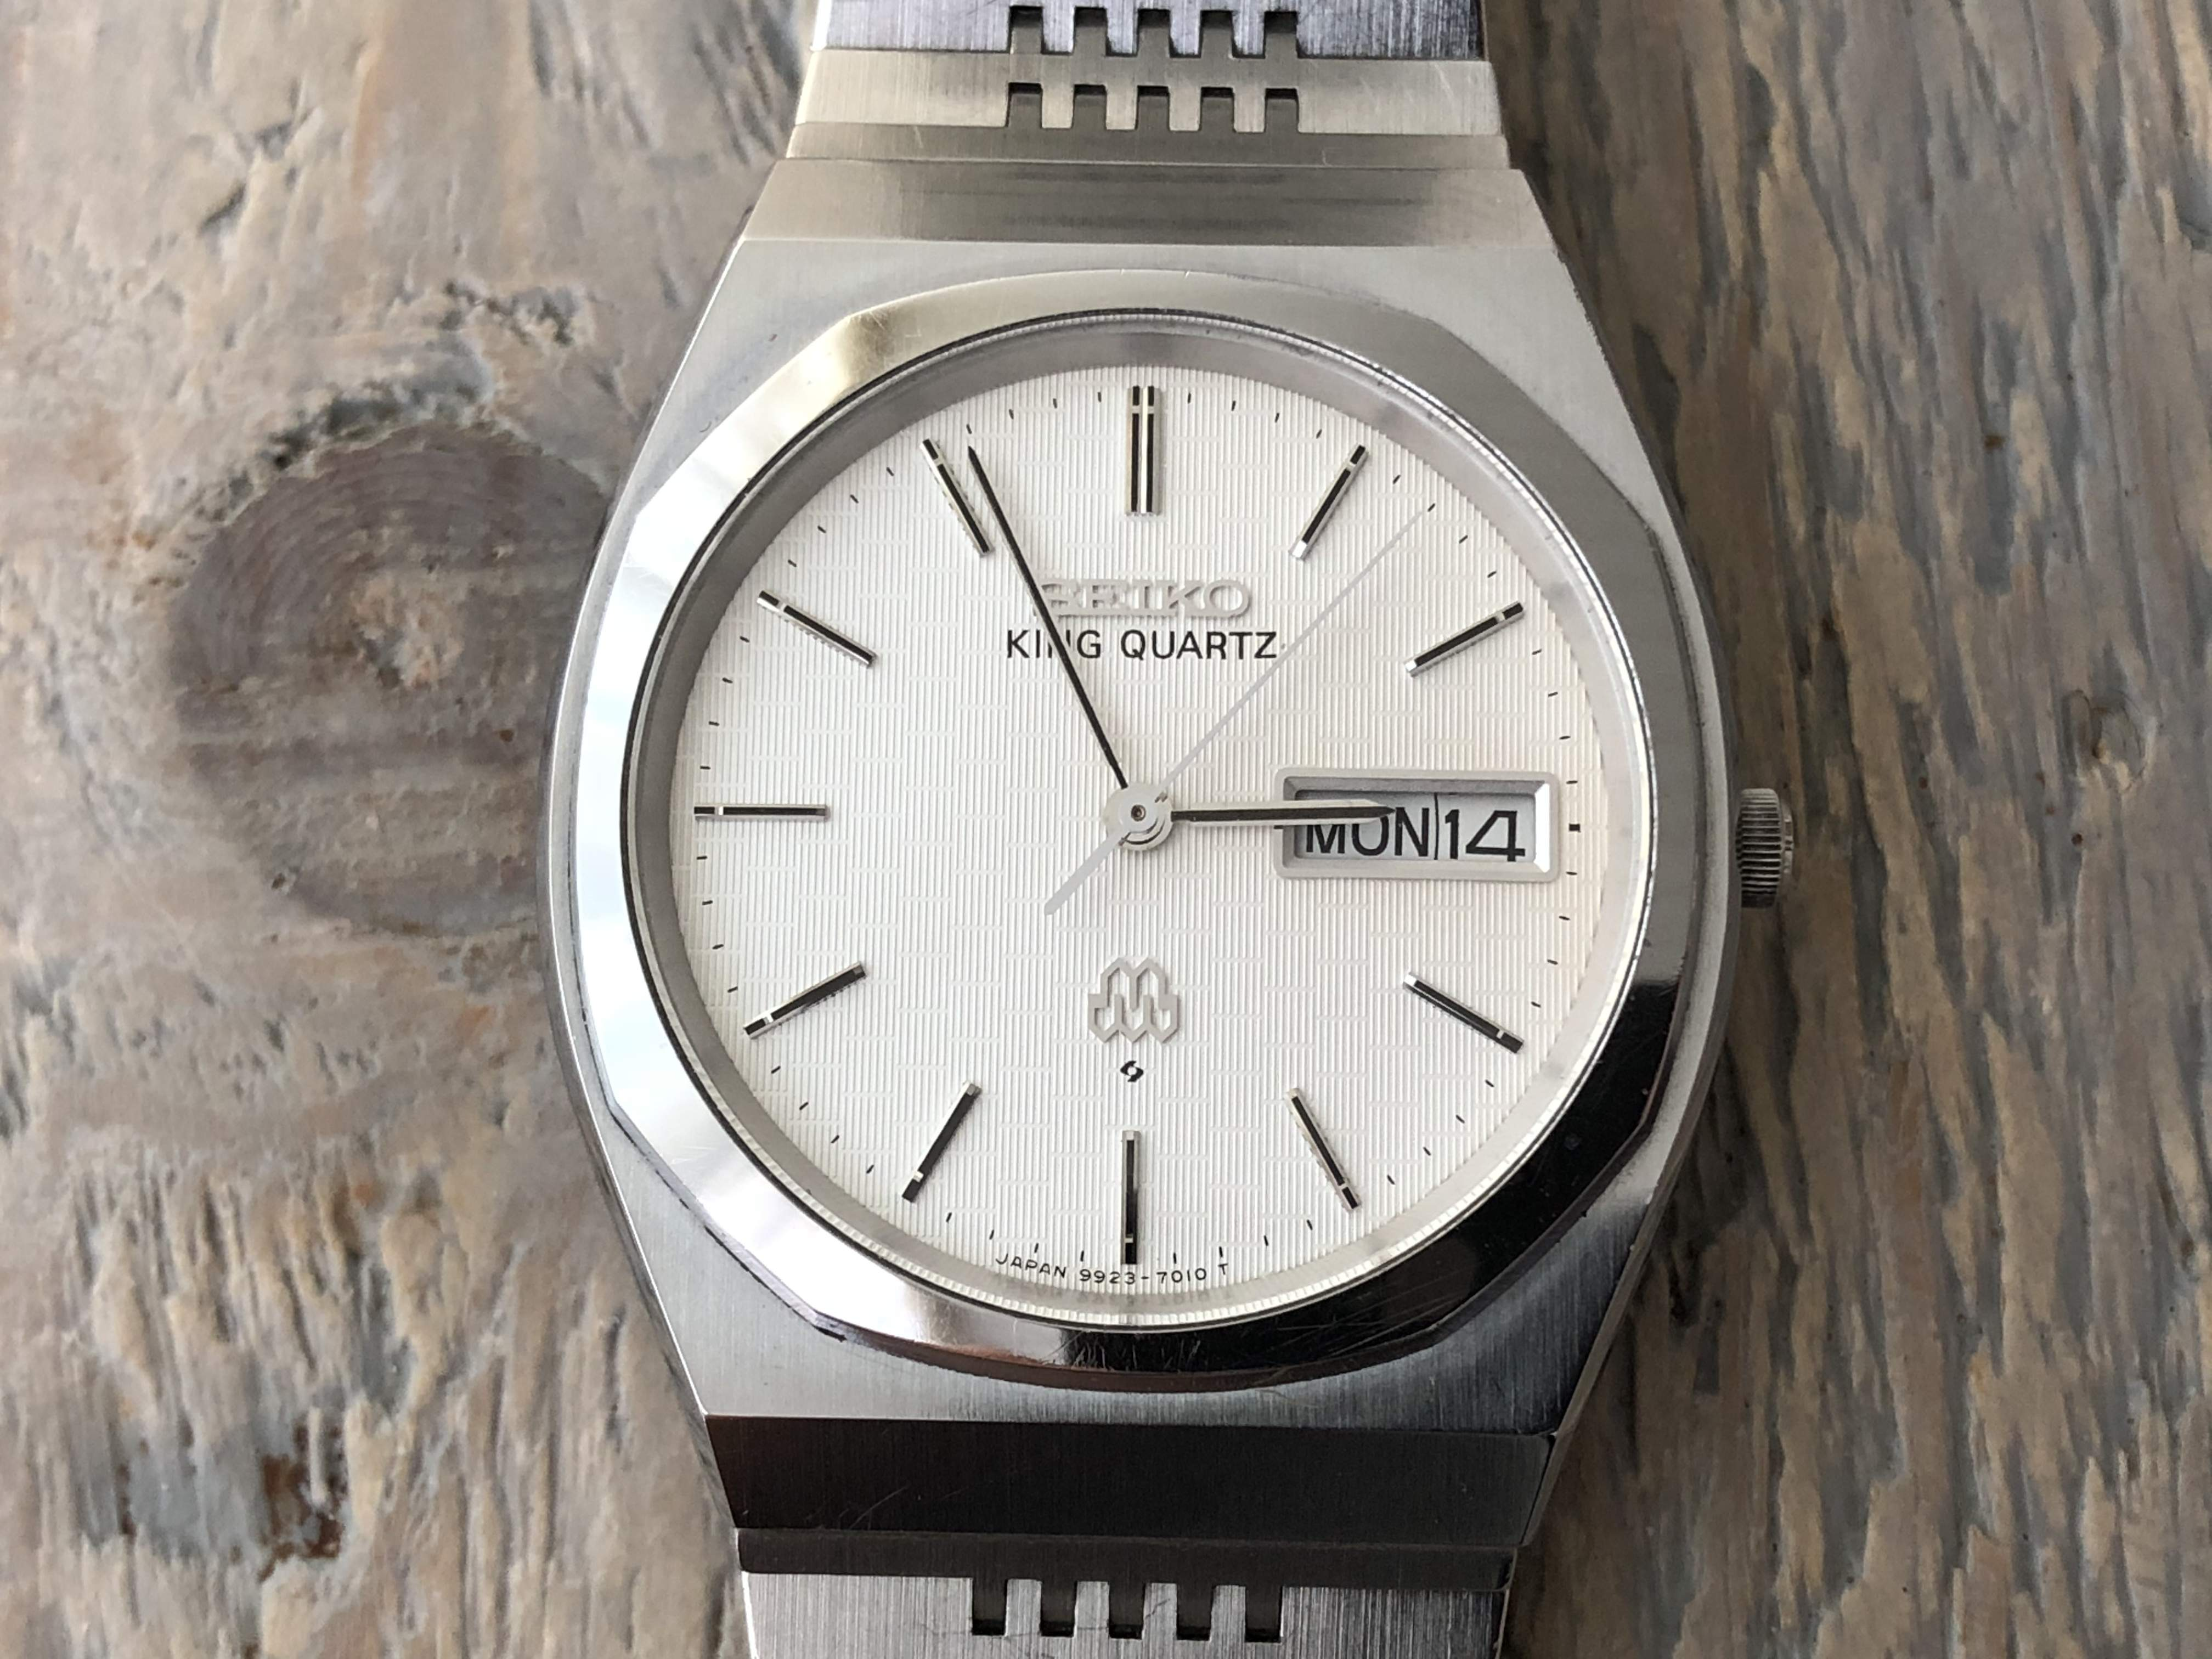 Seiko King Quartz 9923-7010 (Sold)